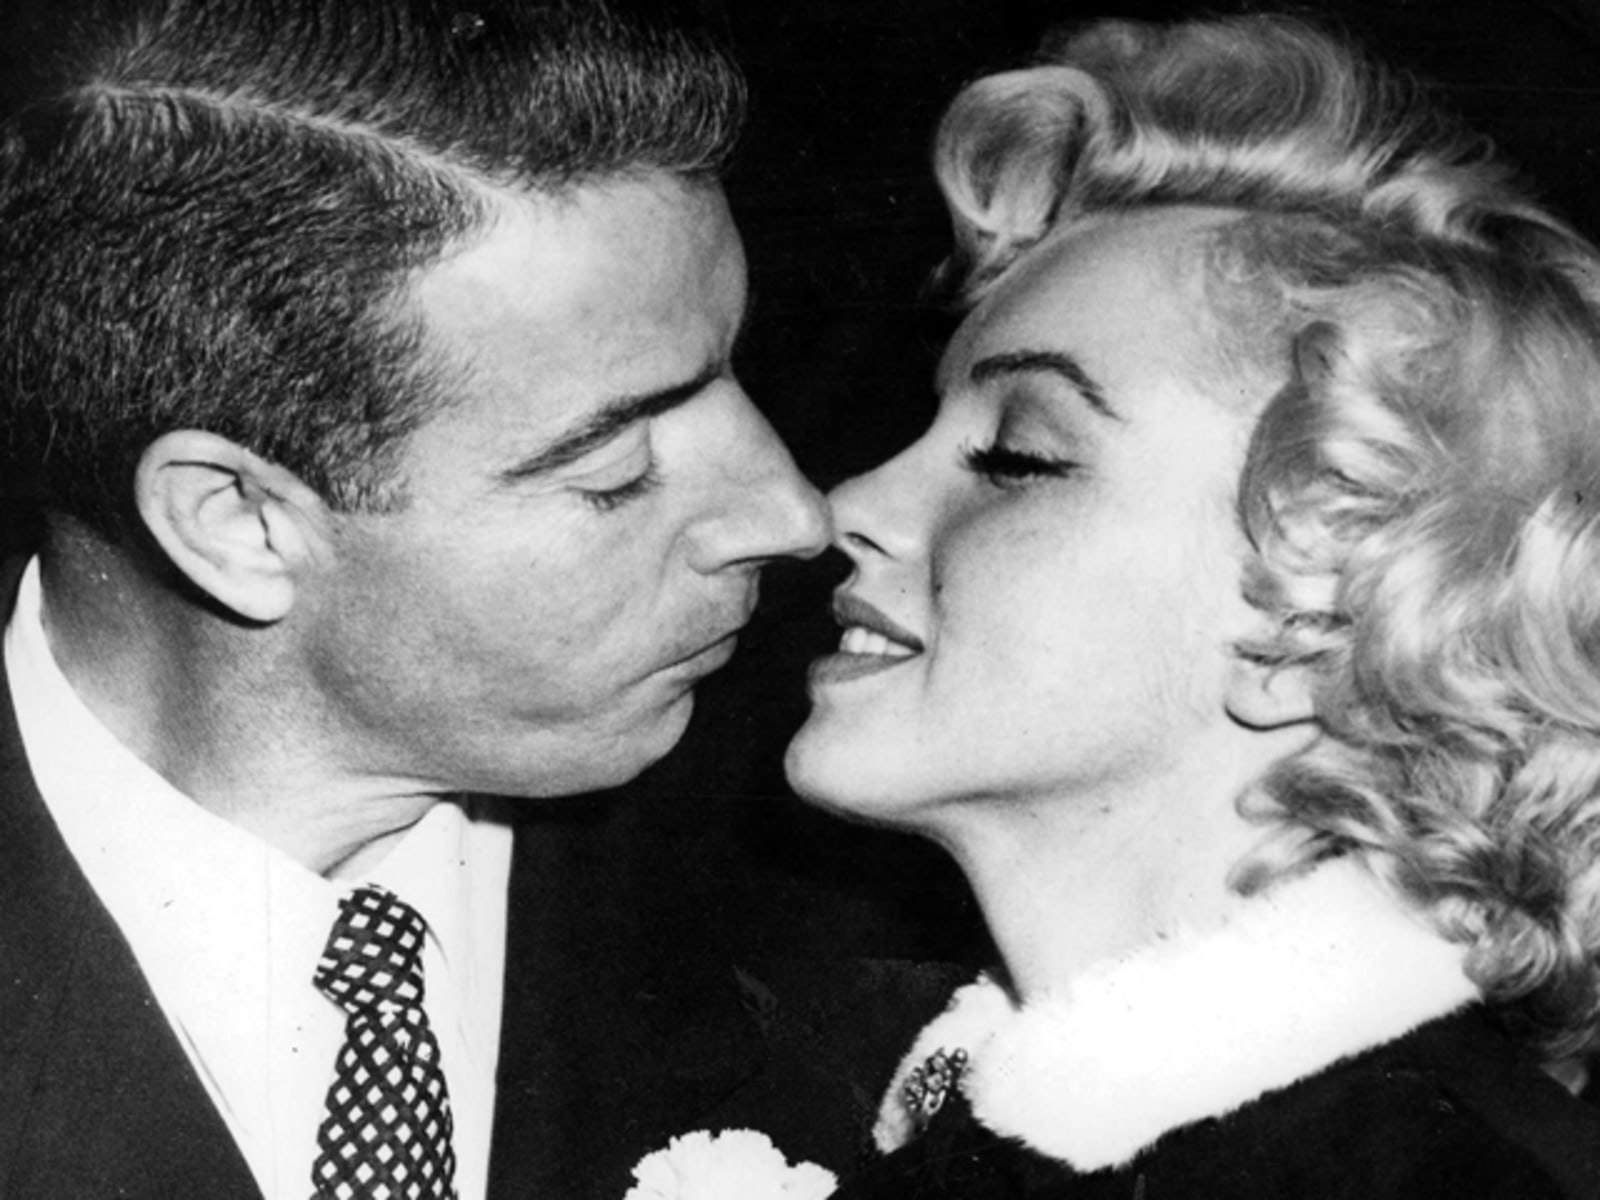 Image: T,V, and Films, 16th January 1954, San Francisco, USA, Legendary Hollywood Film actress Marilyn Monroe prepares to kiss her husband former US Baseball player Joe DiMaggio after their wedding